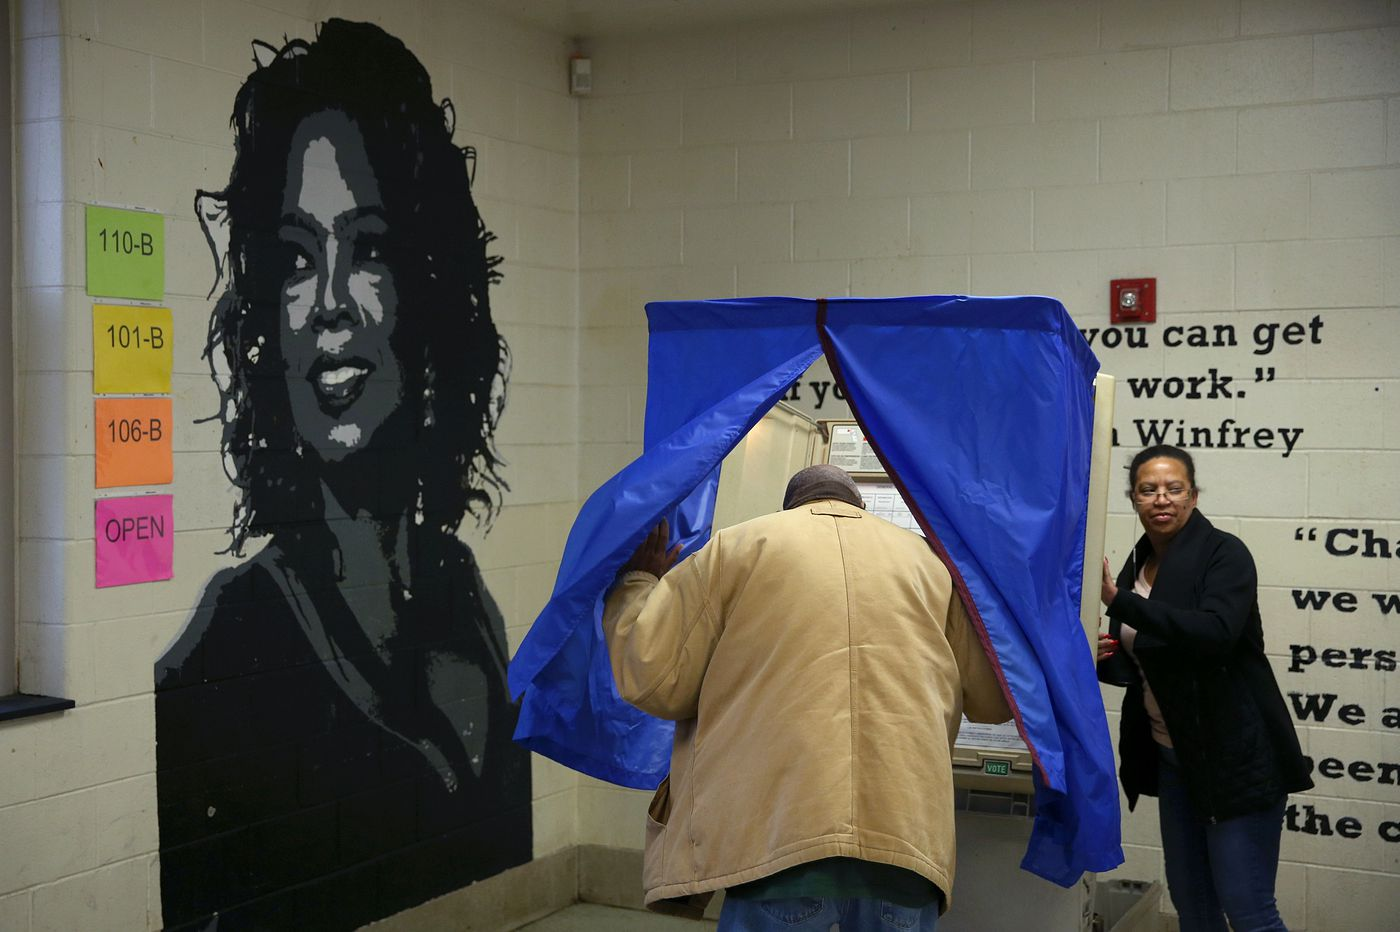 Election Day in pictures: Our photographers capture voters at the polls